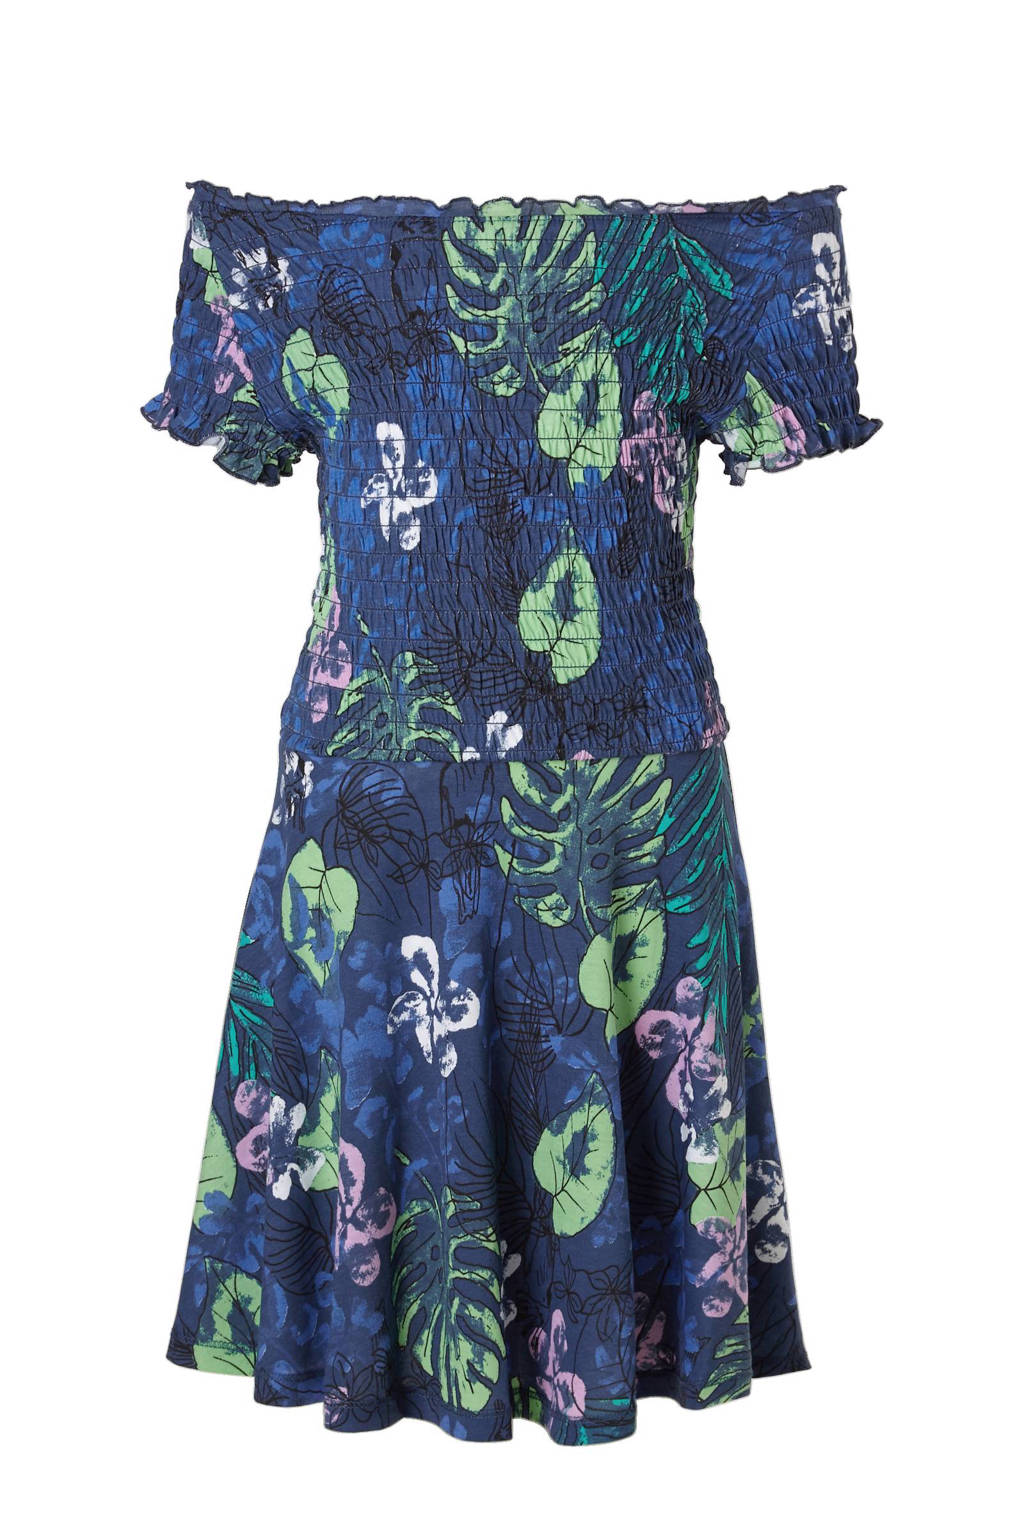 b554ee4d1285b7 s.Oliver jurk met all-over print donkerblauw